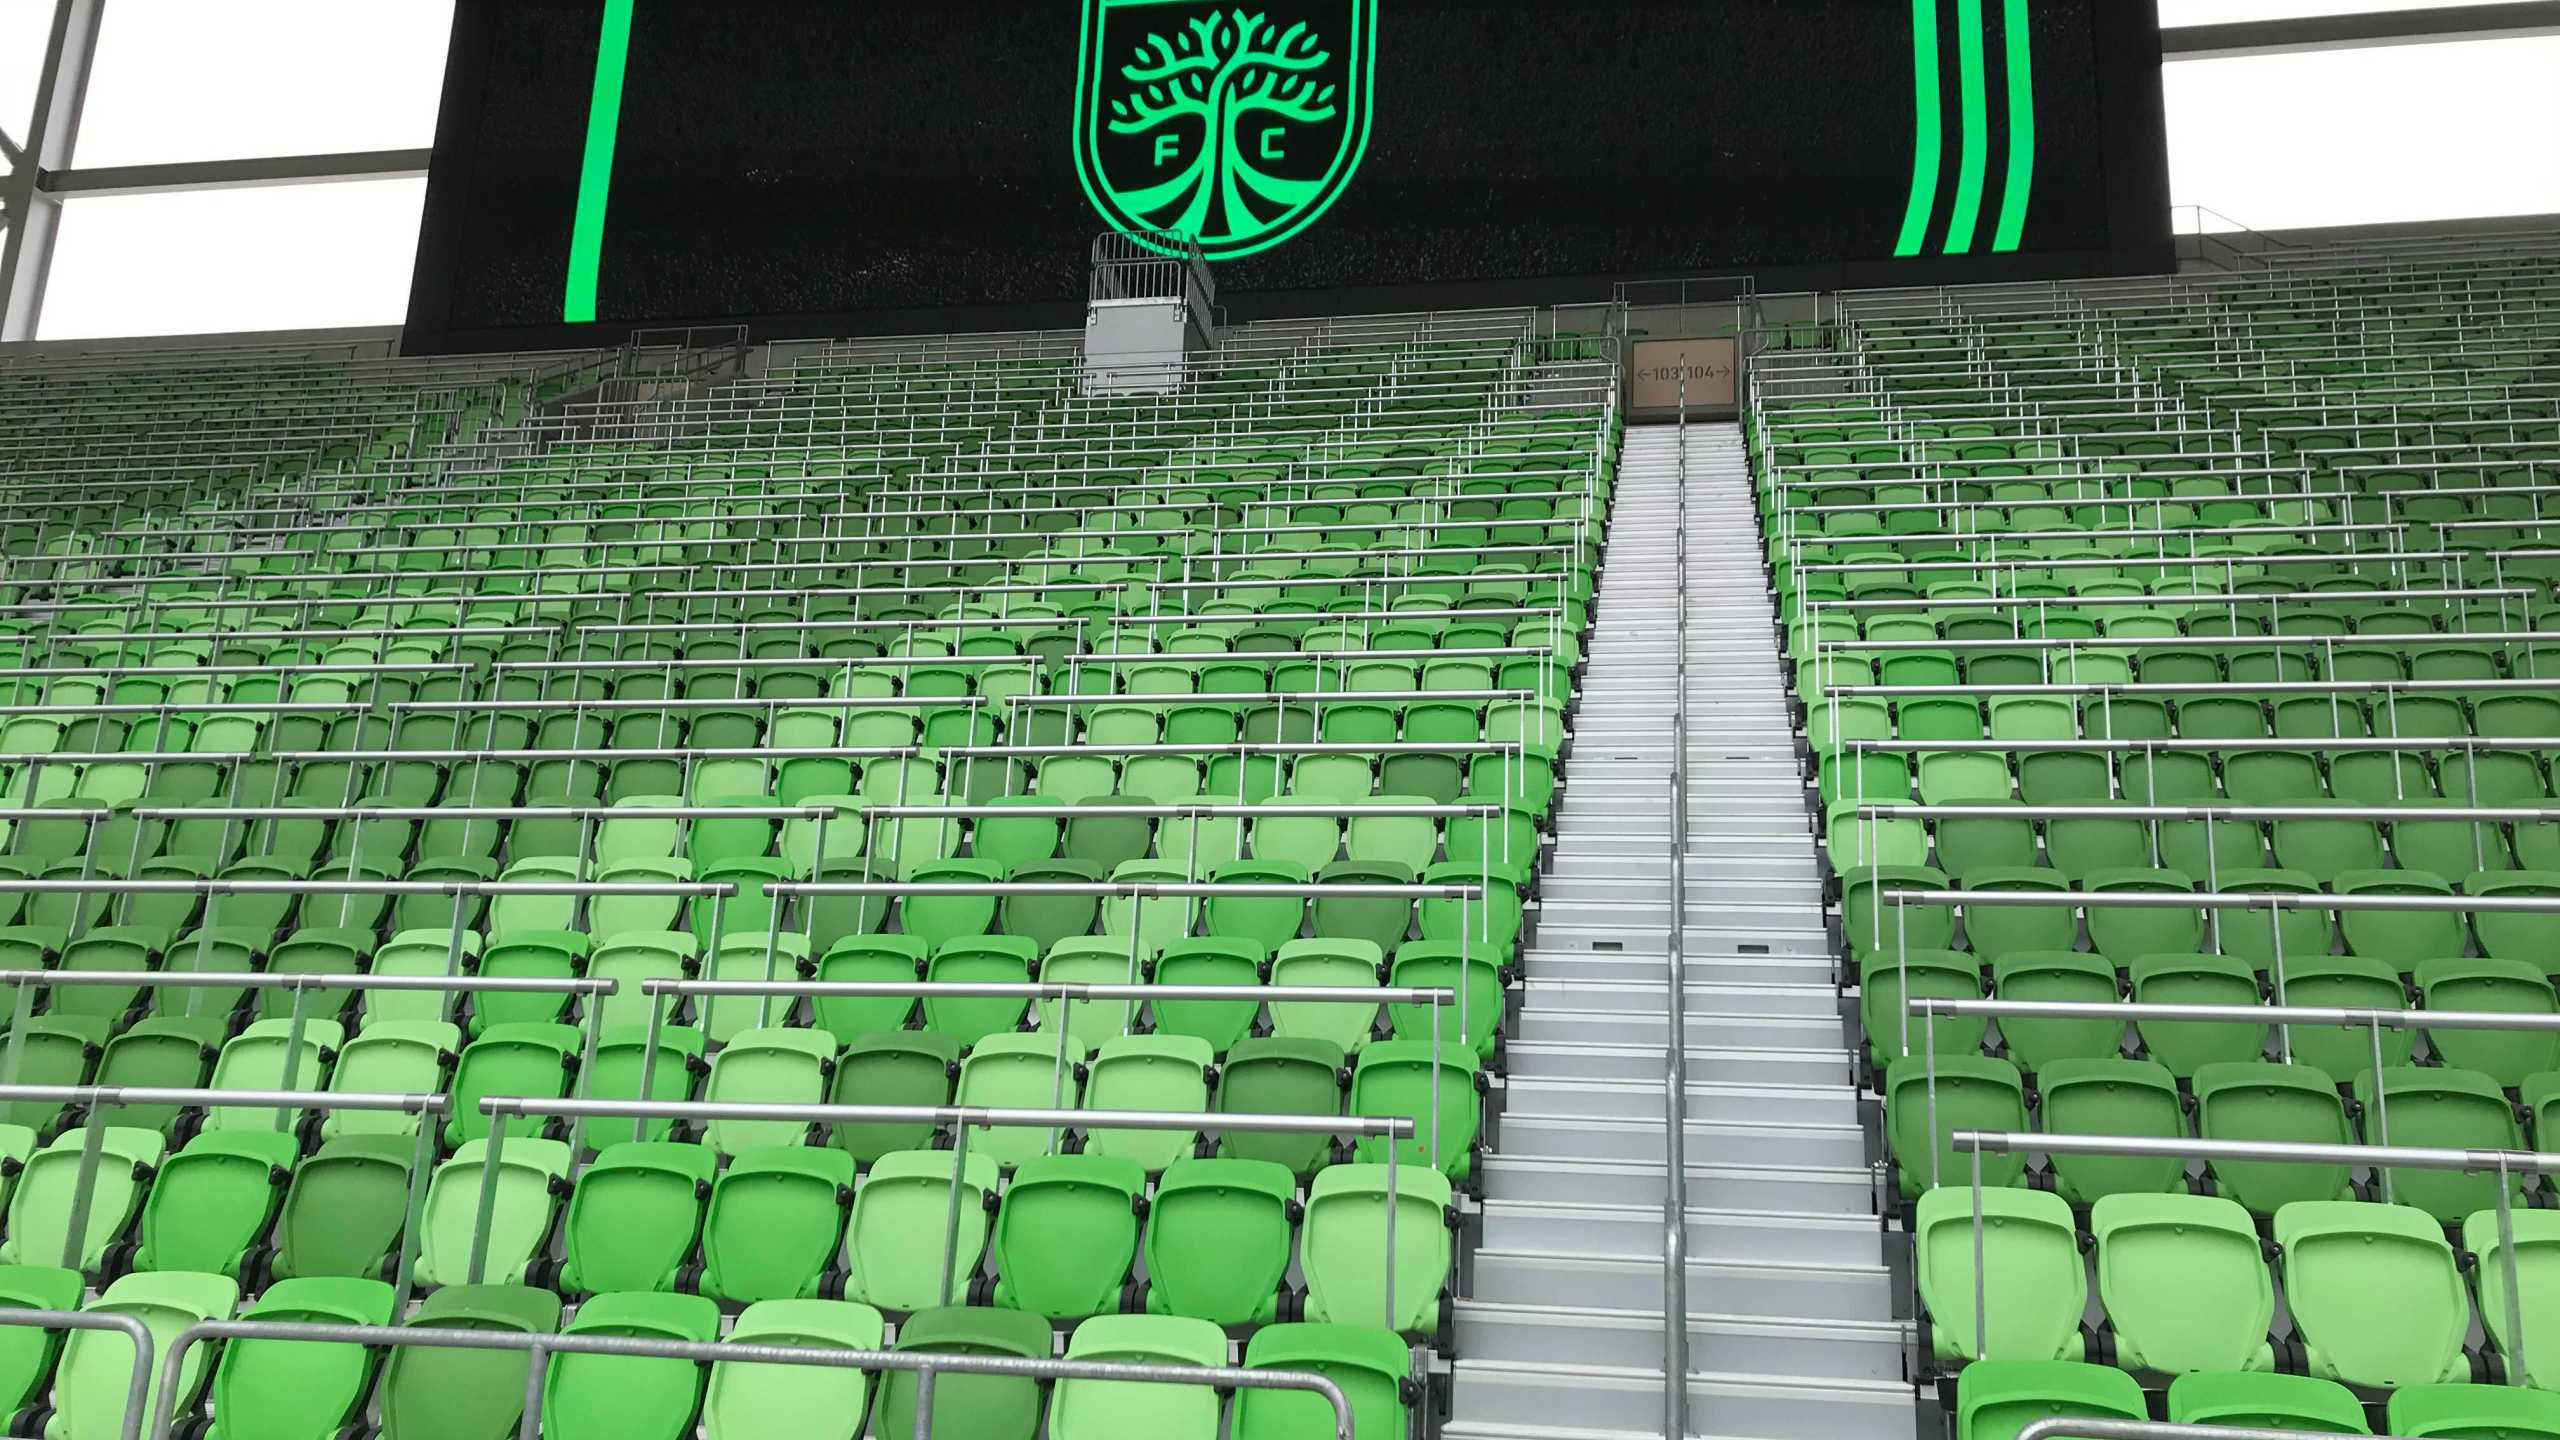 The main stand, where the most vocal supporters will enjoy the games (Picture: KXAN)